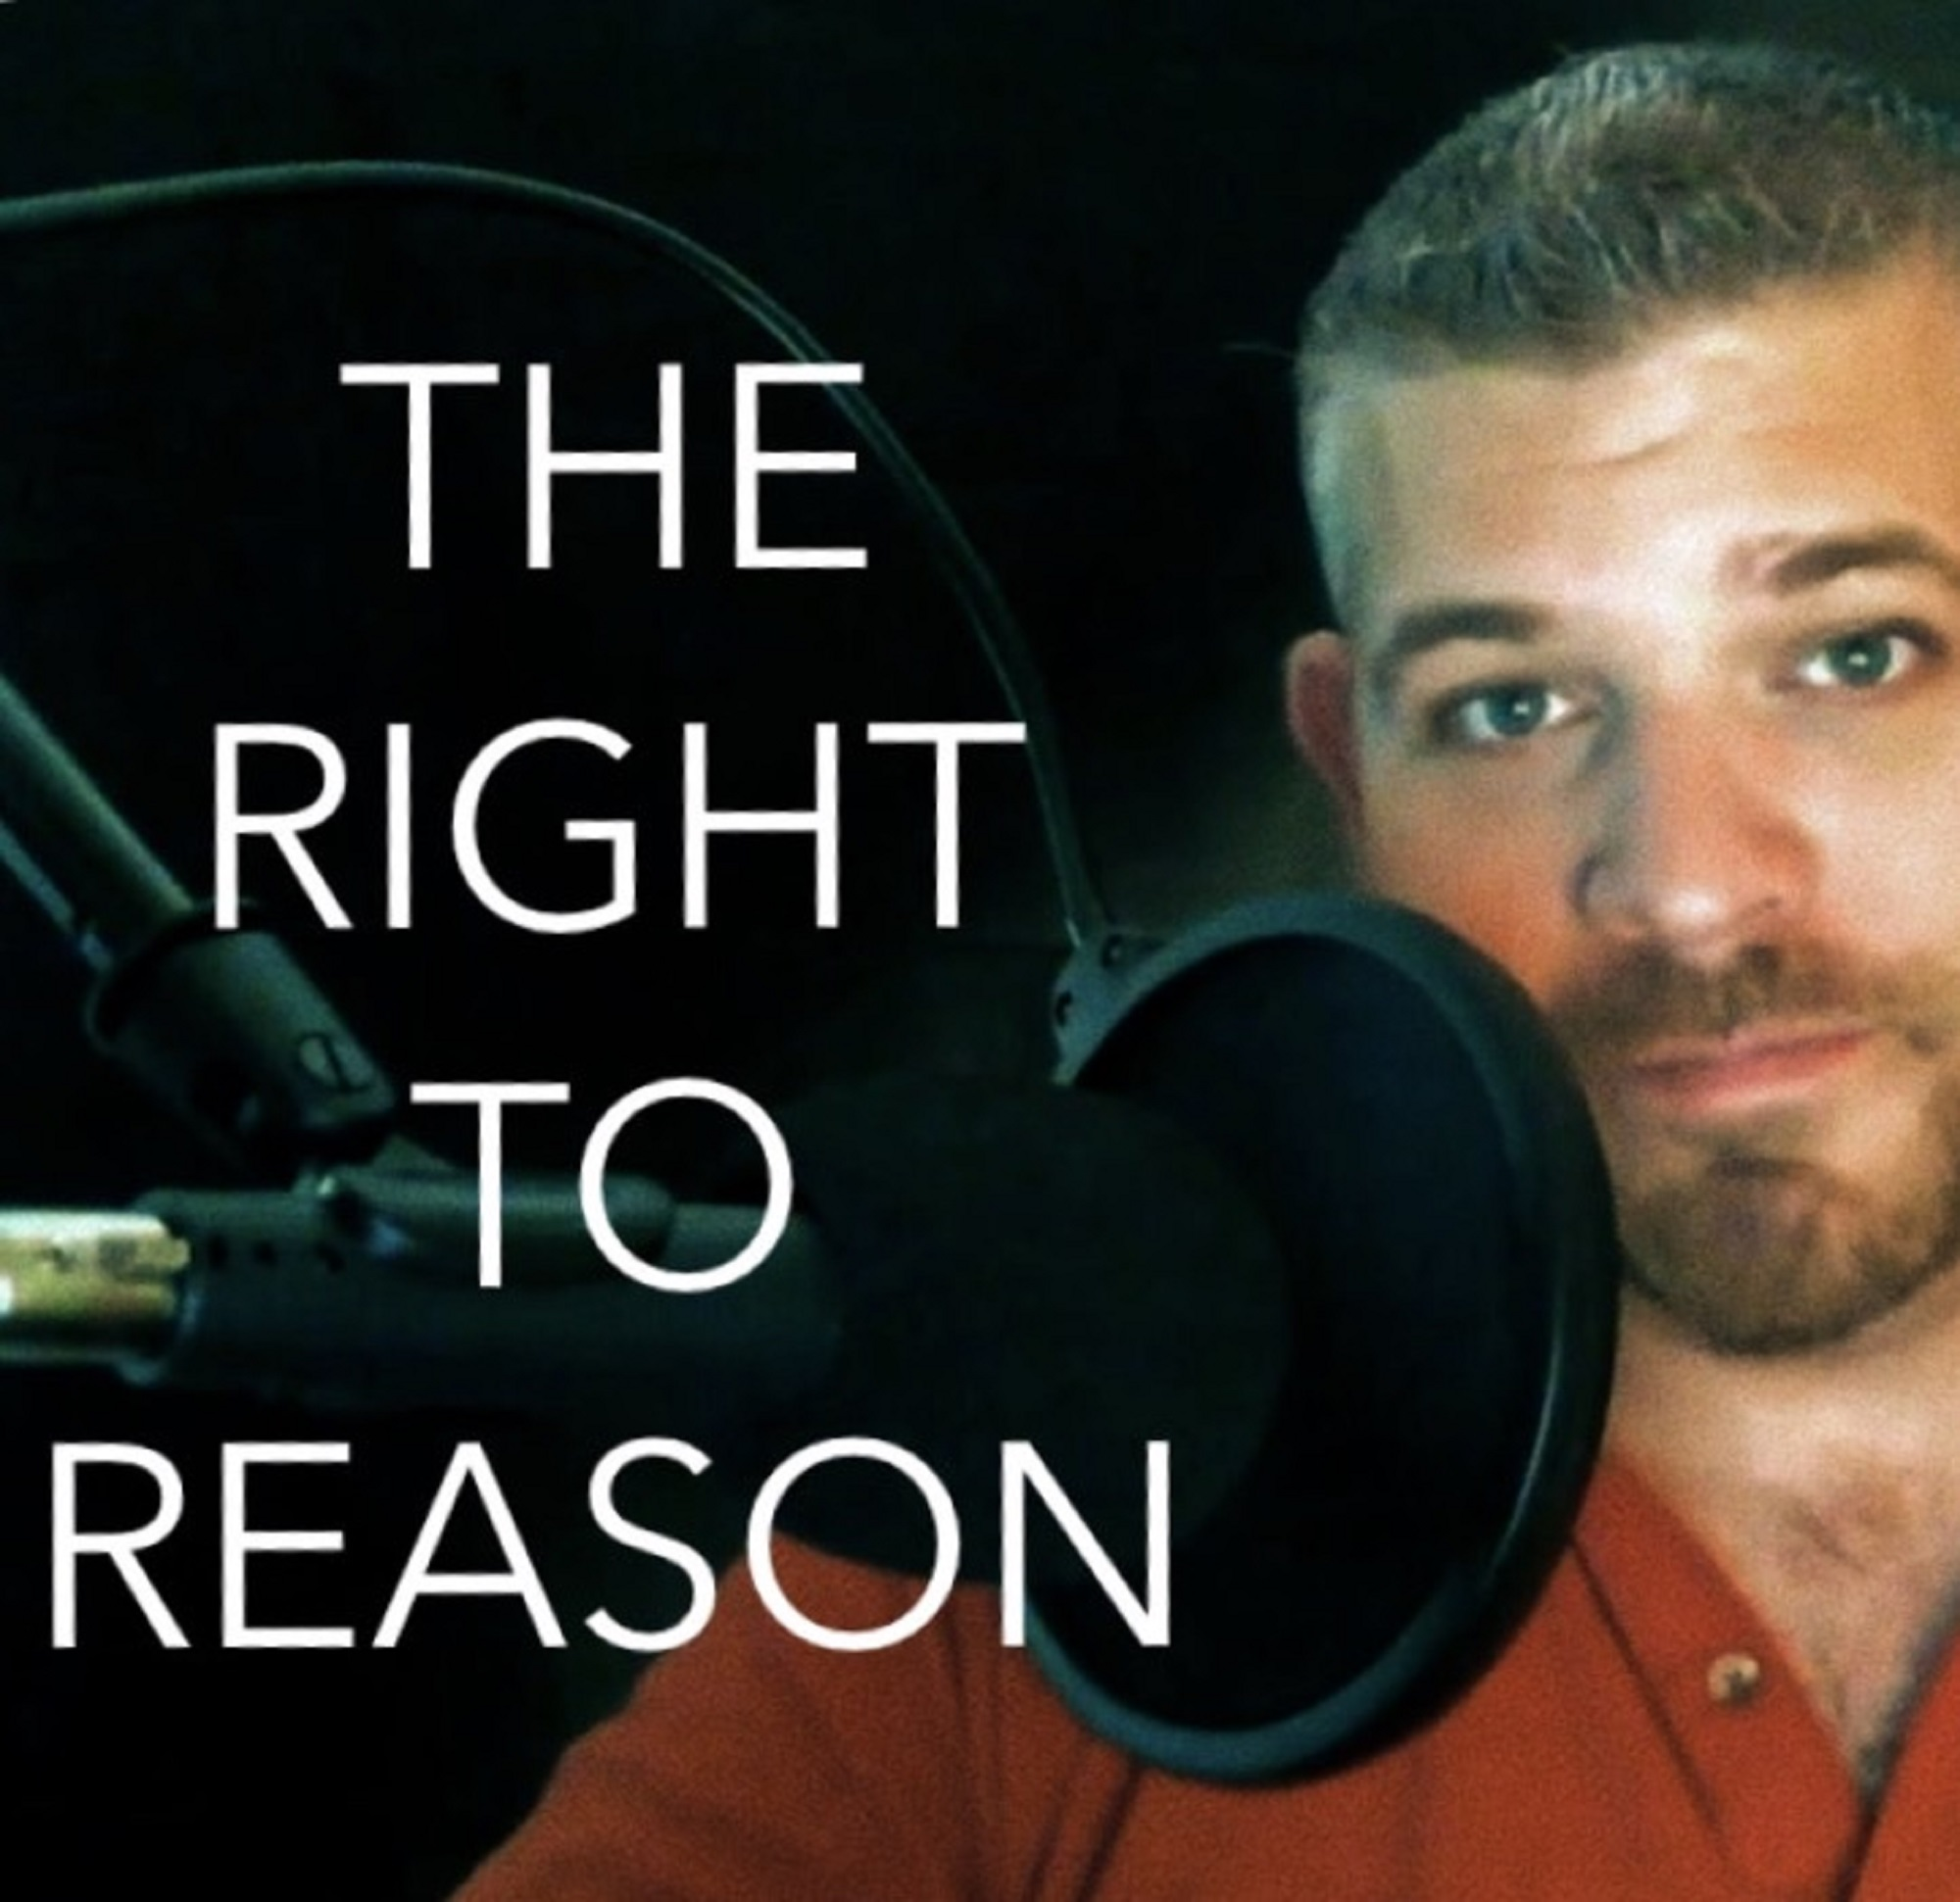 The Right to Reason